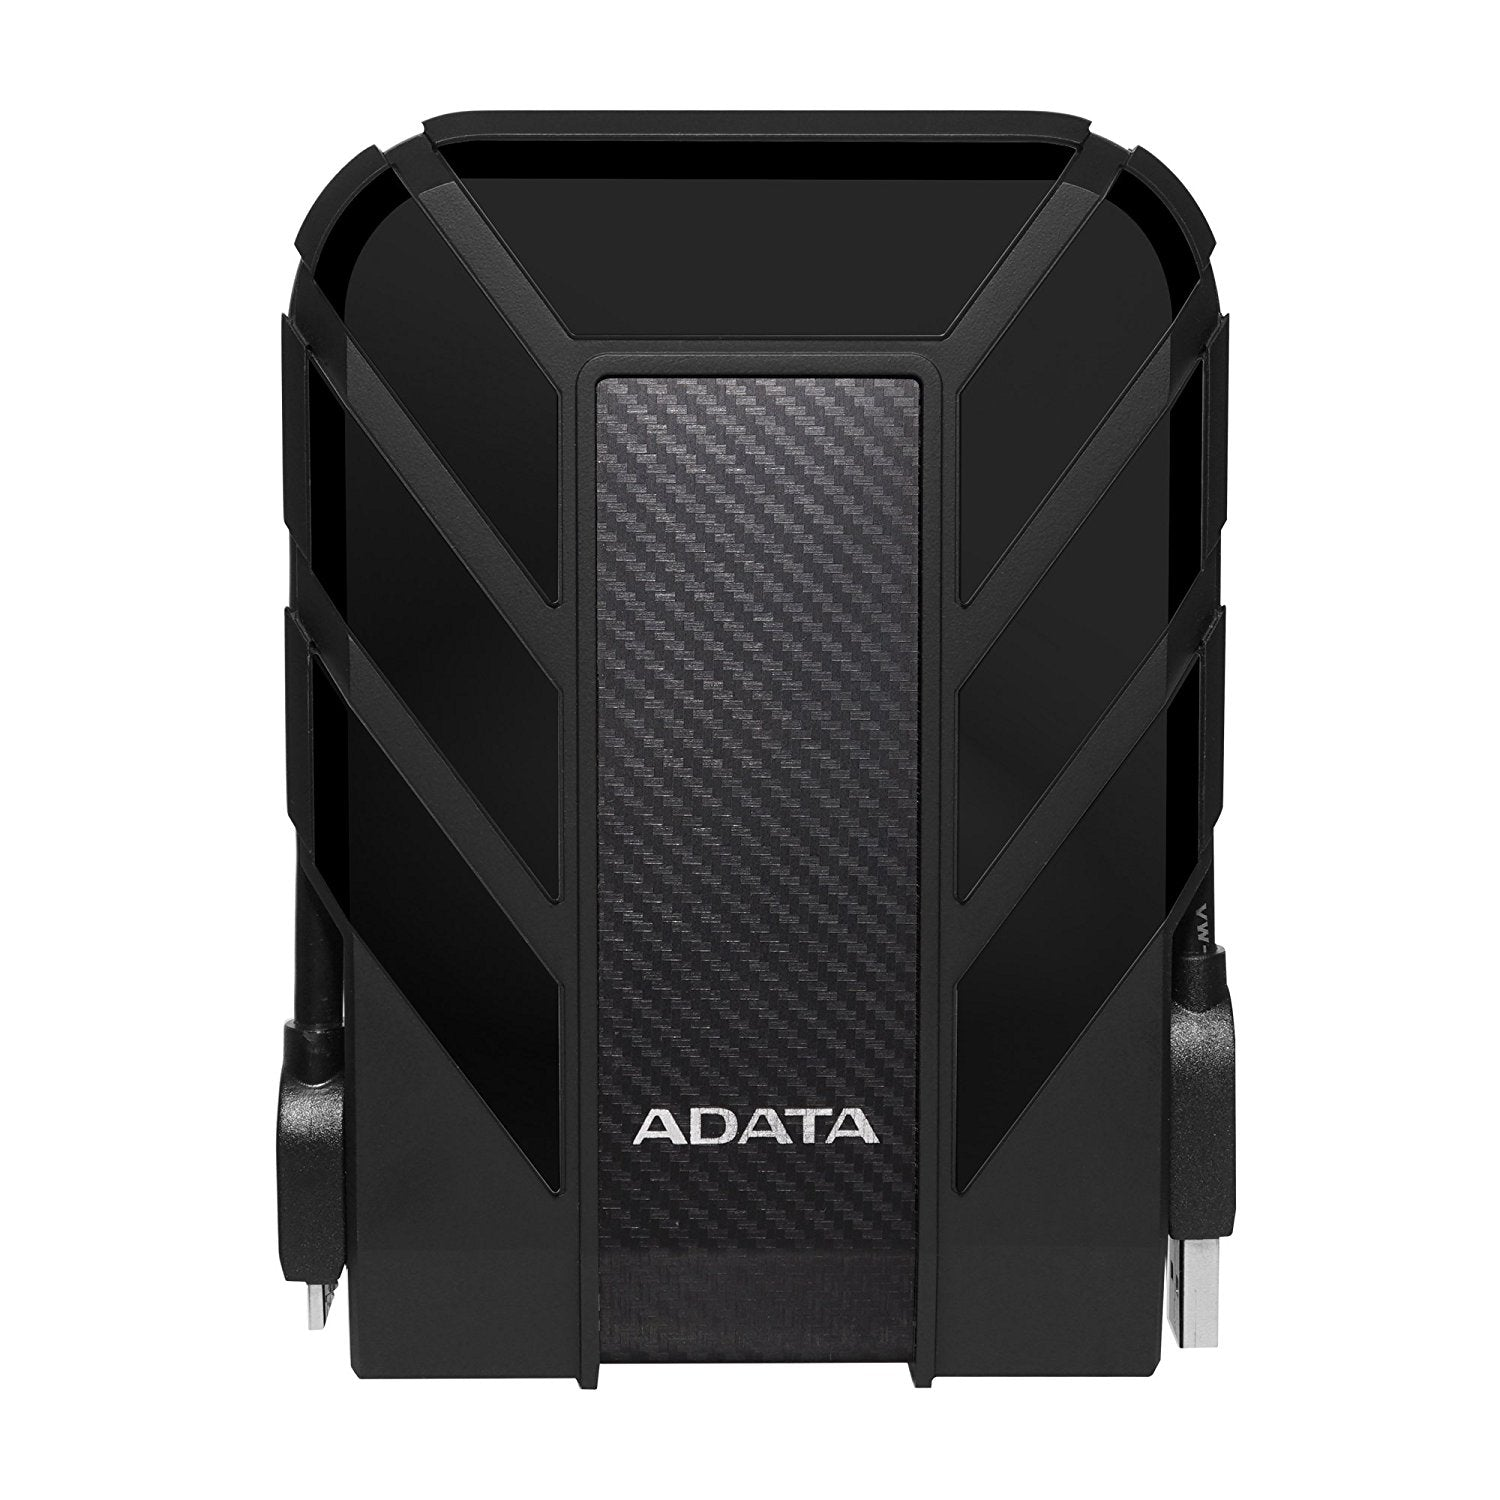 Adata HD710 Pro 1TB Portable USB External Hard Drive